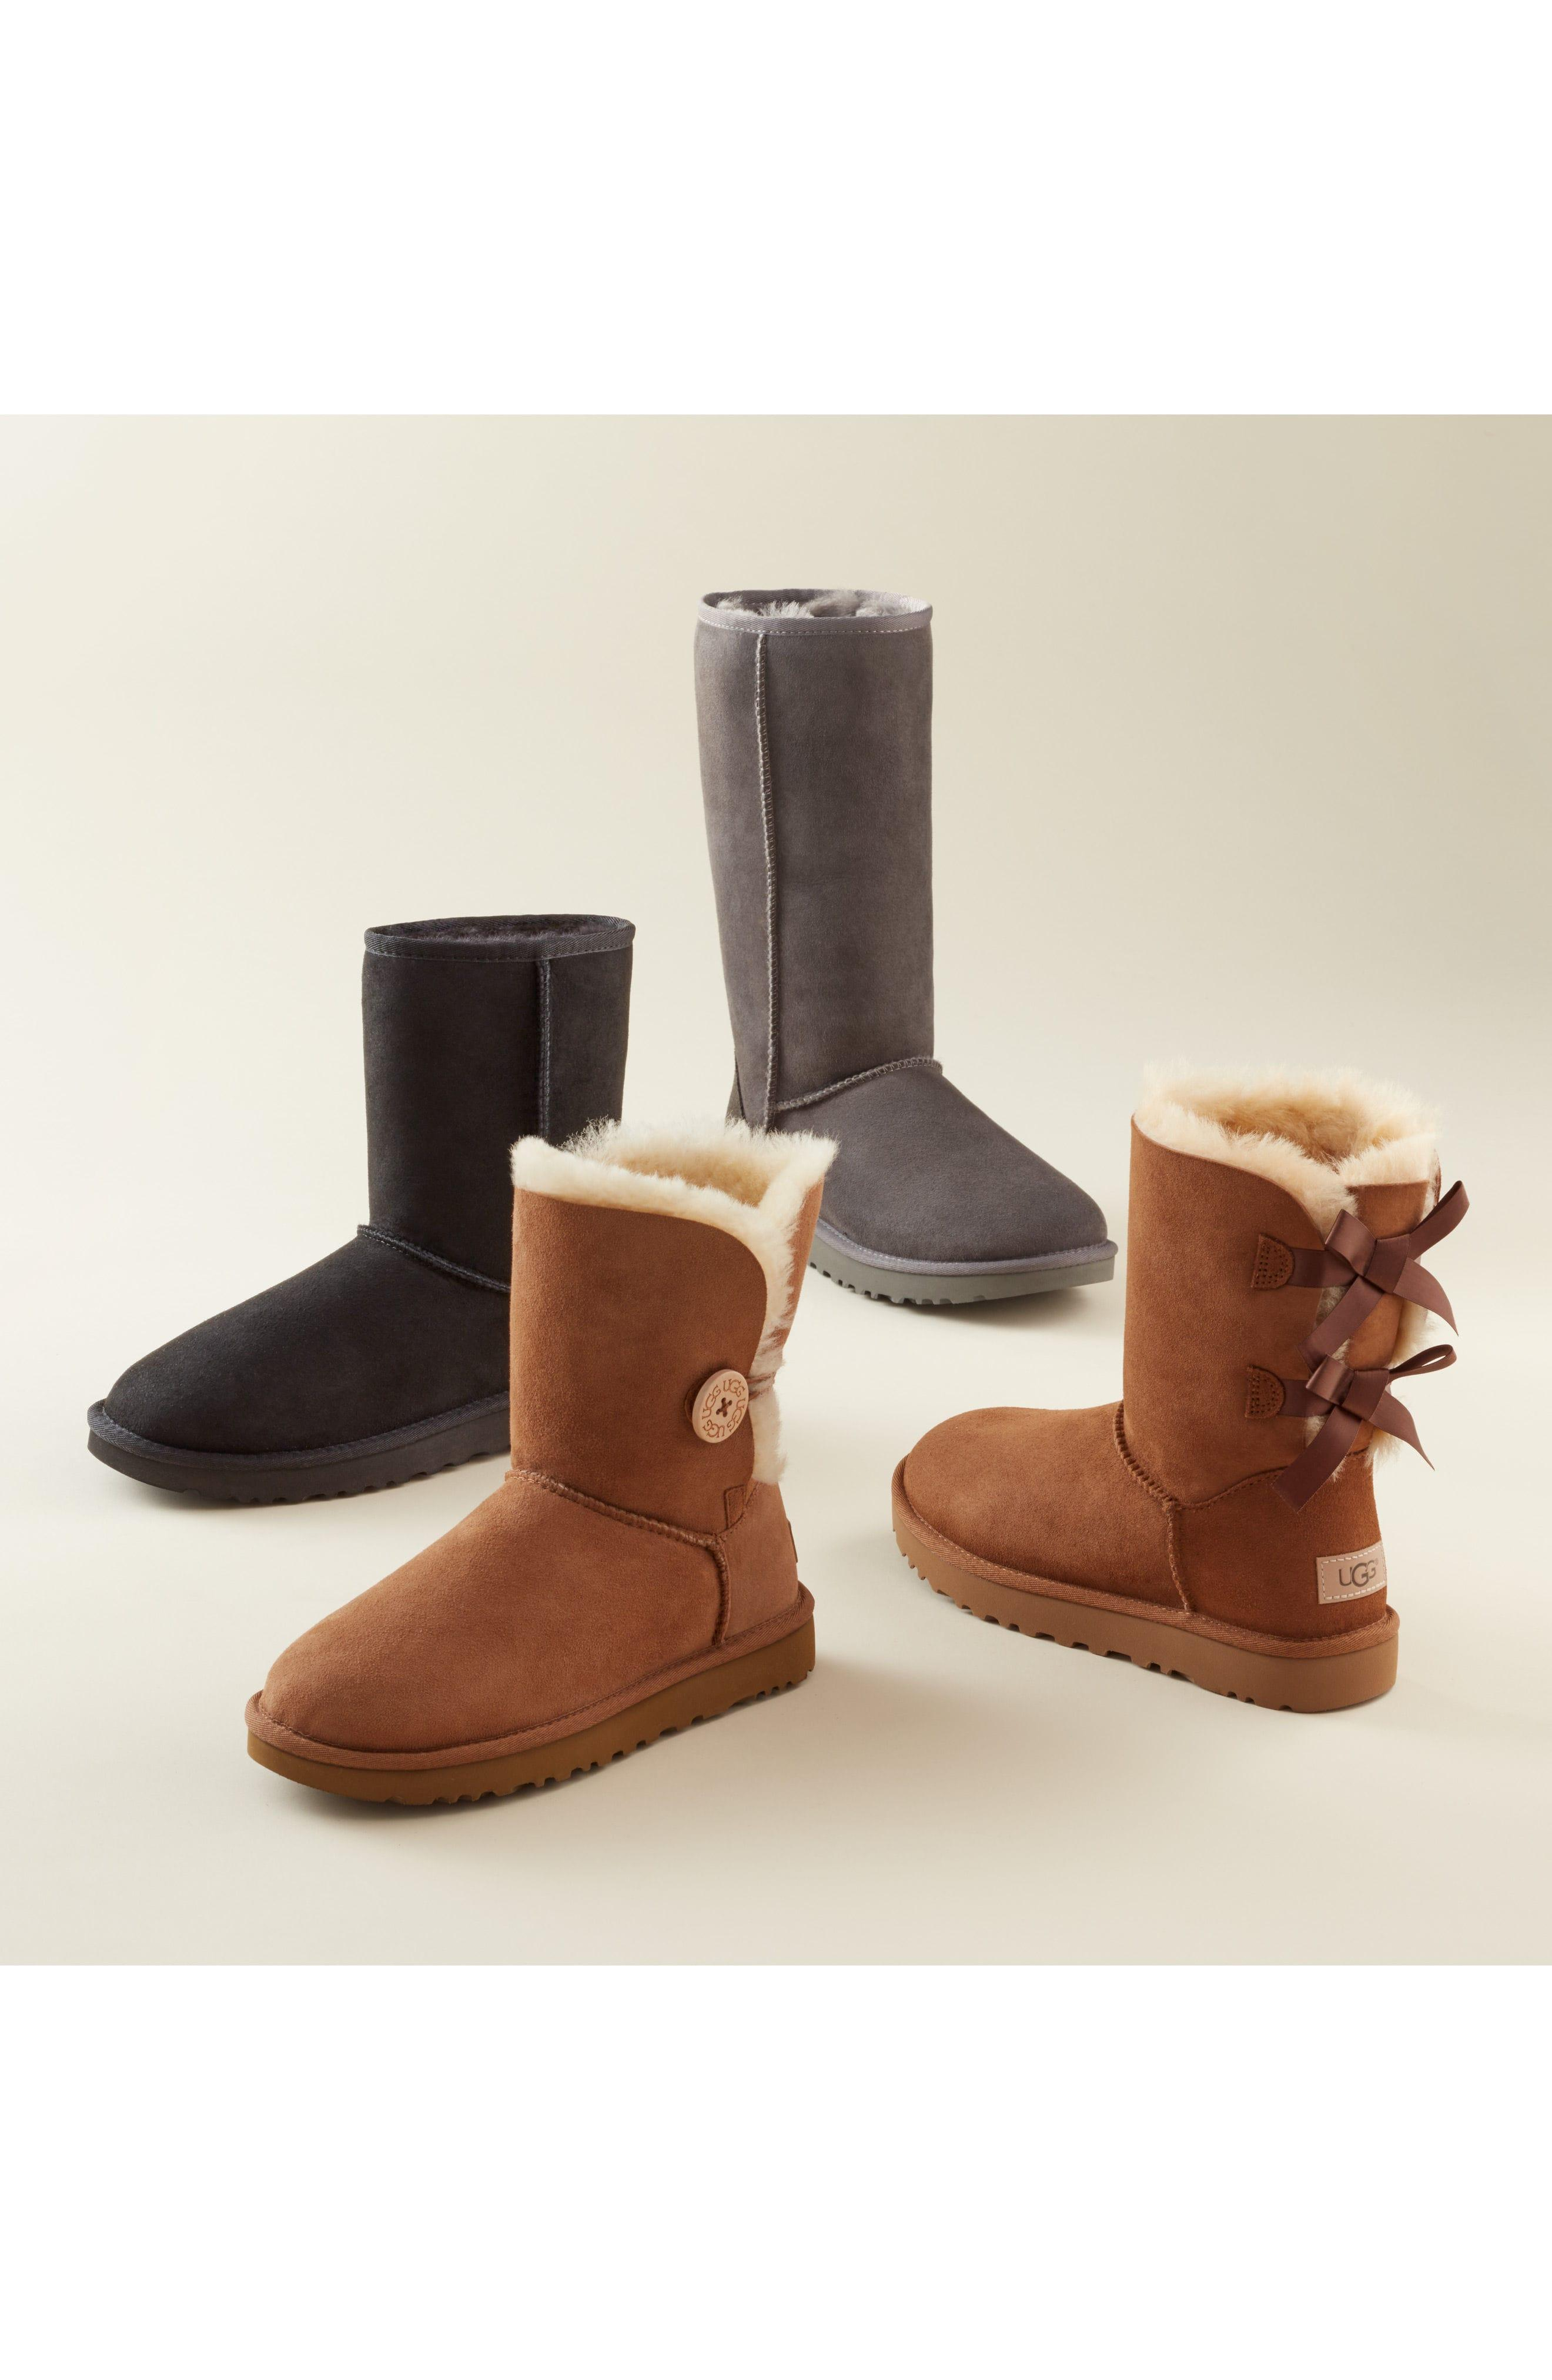 d4207f7a05e 'Classic Ii' Genuine Shearling Lined Tall Boot (Women) in Sand Suede